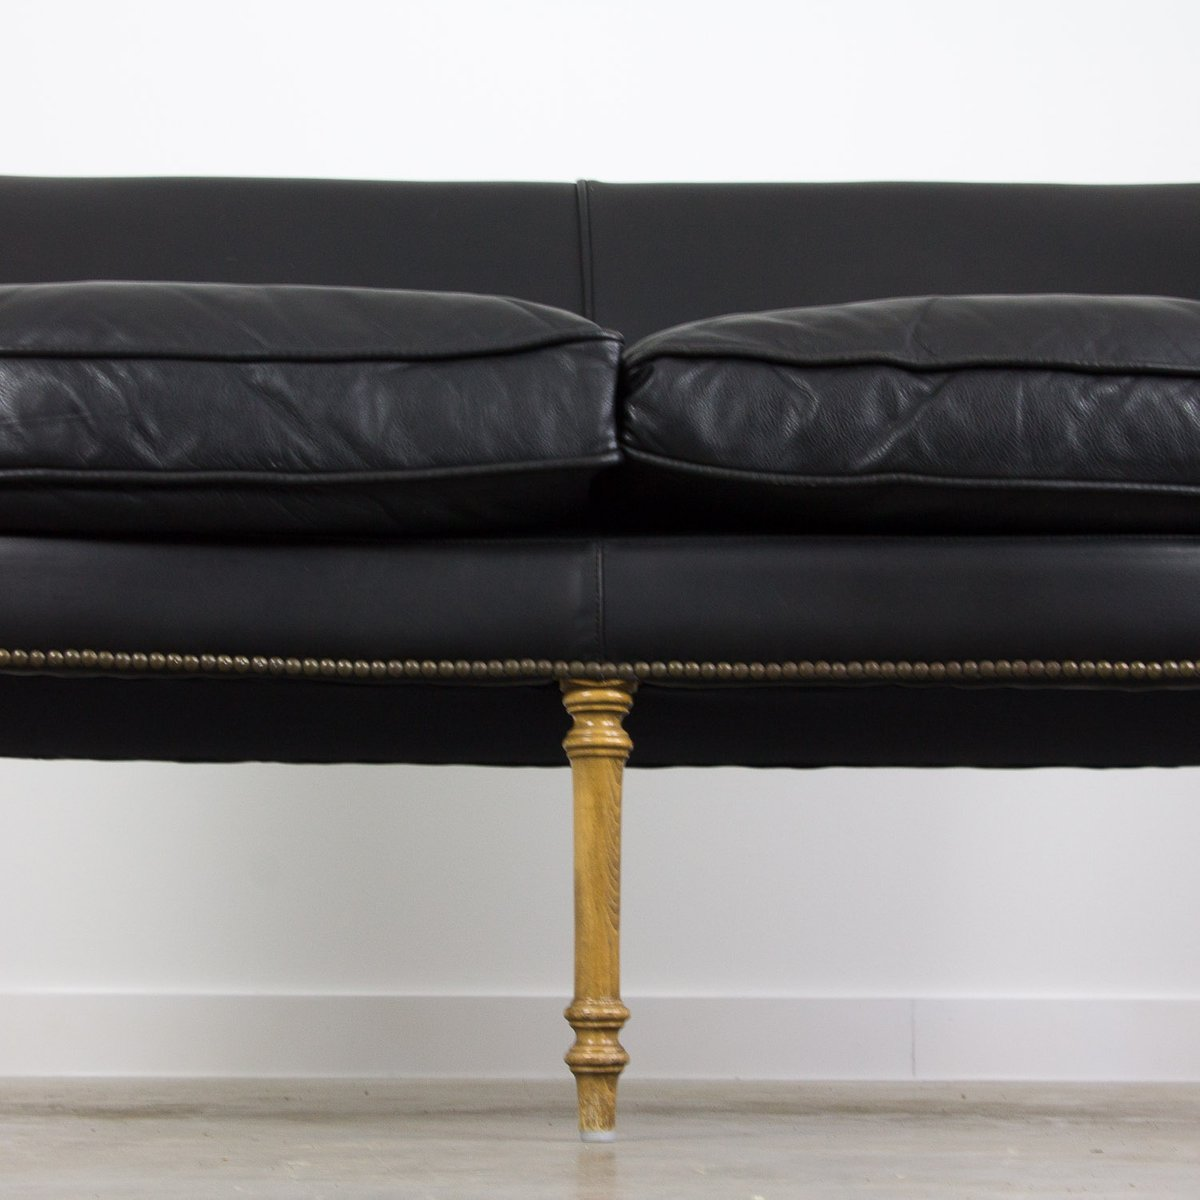 Black Leather Sofa, 1950s 11. $928.00. Price per piece